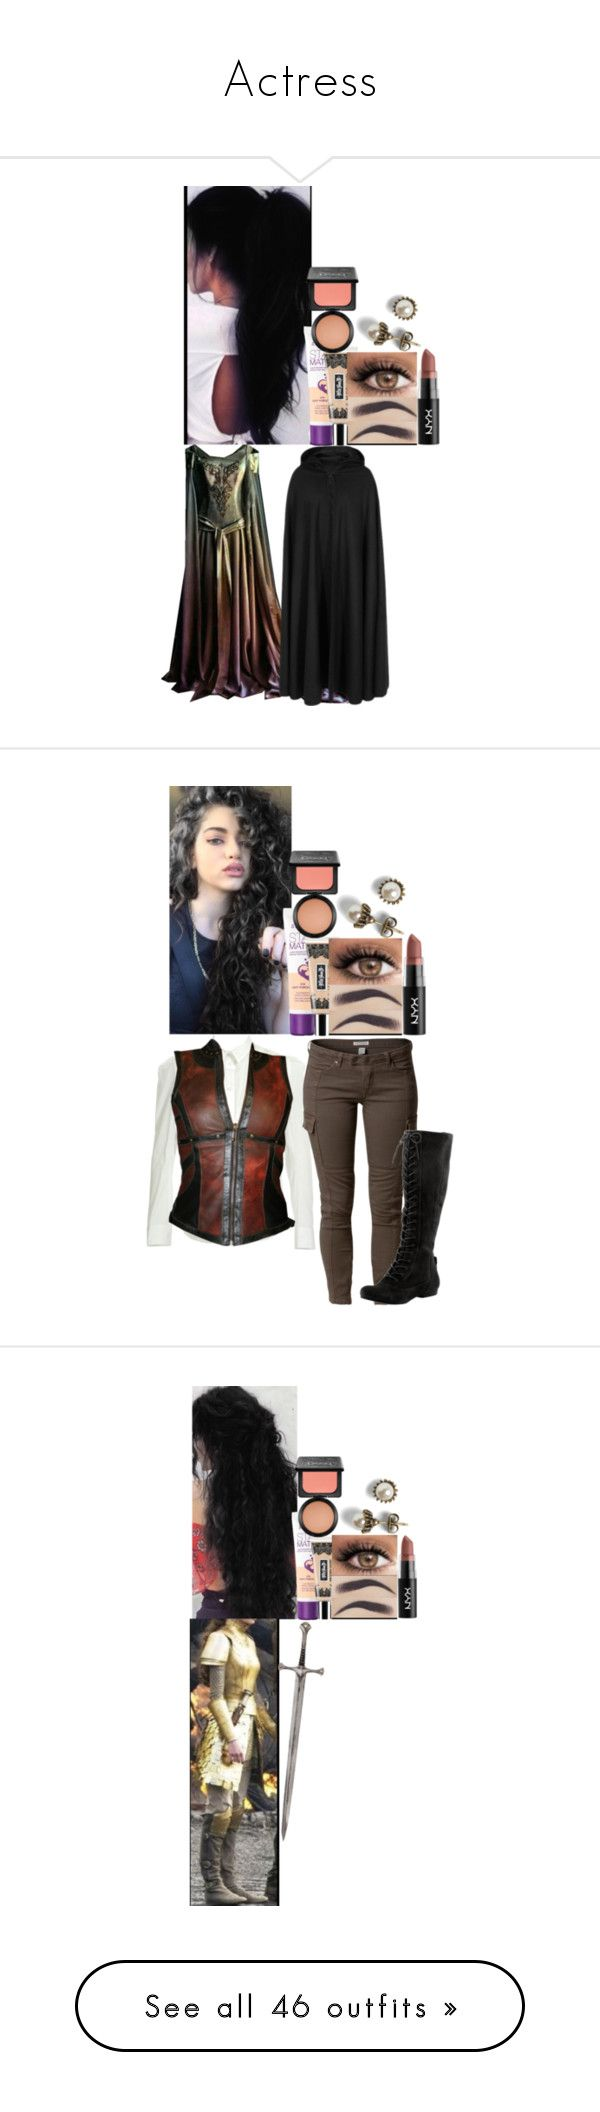 """""""Actress"""" by fuckmeirwin ❤ liked on Polyvore featuring Rimmel, Kat Von D, MAC Cosmetics, NYX, Priestley's Vintage, Five and Diamond, Savannah, Nine West, Denim & Supply by Ralph Lauren and Wet n Wild"""